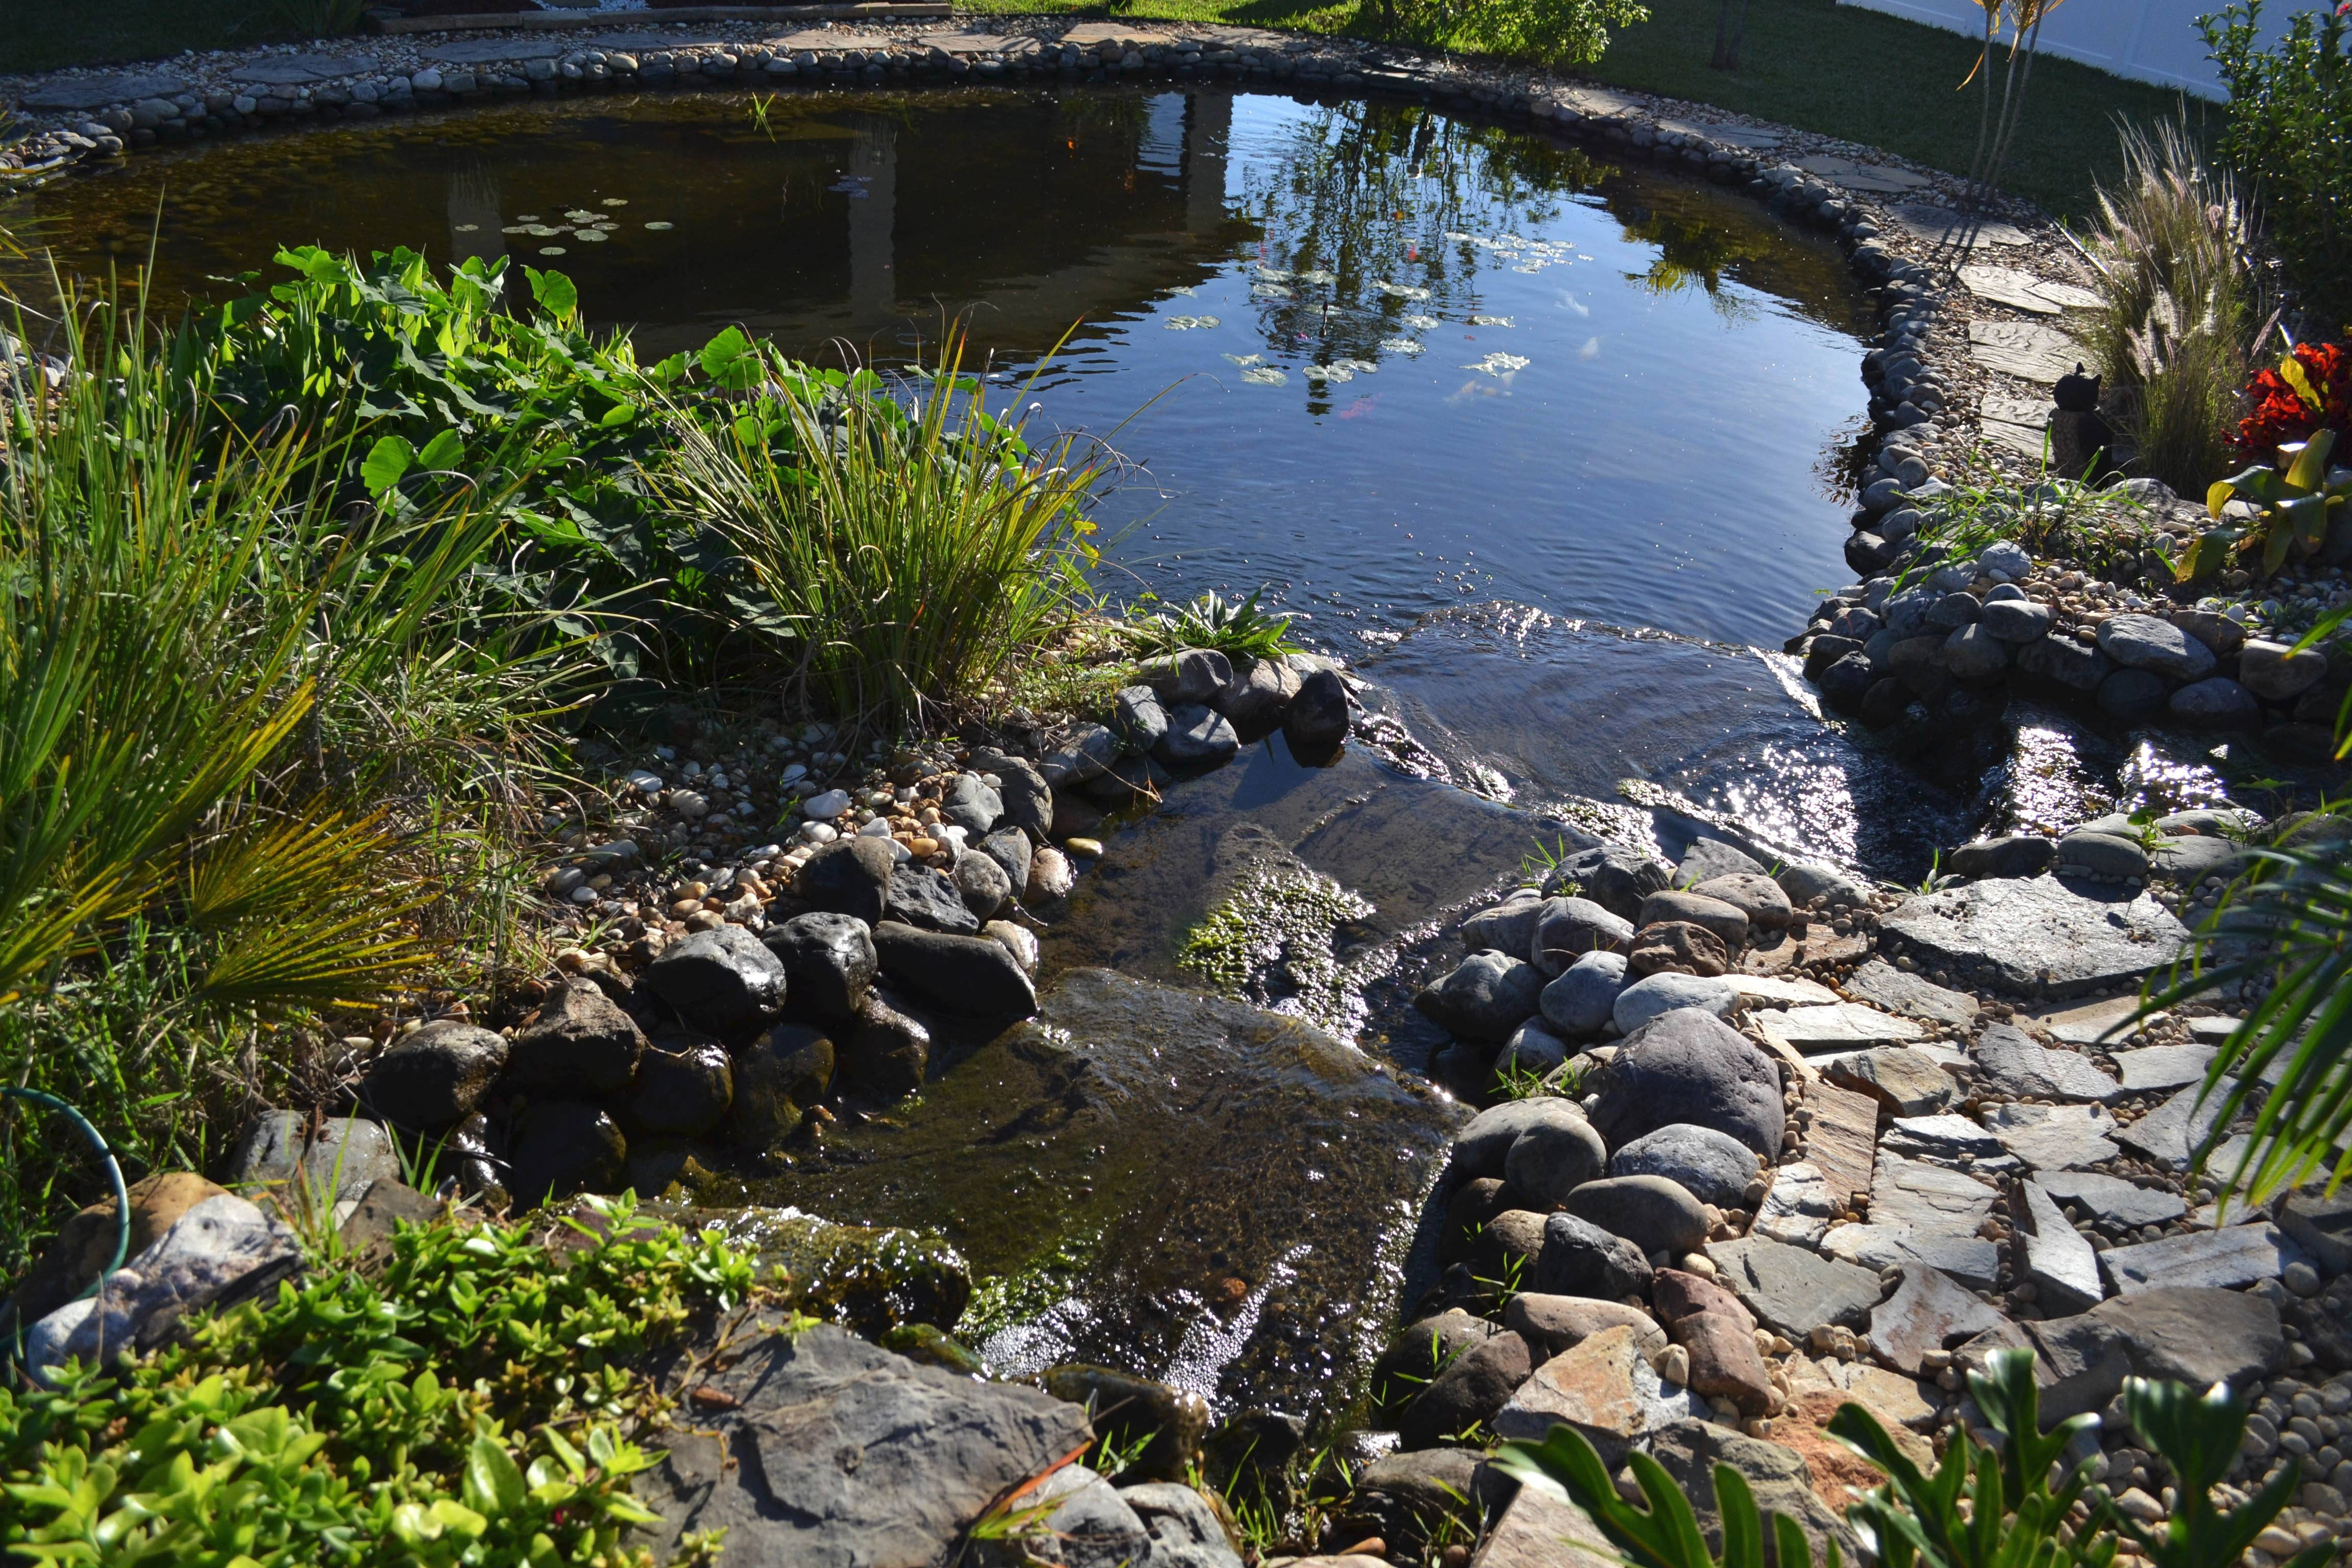 Sonny Alansky designed this pond for the backyard of his home in Rockledge, Fla. It measures roughly 37 feet in diameter, has three waterfalls and 14 koi fish.